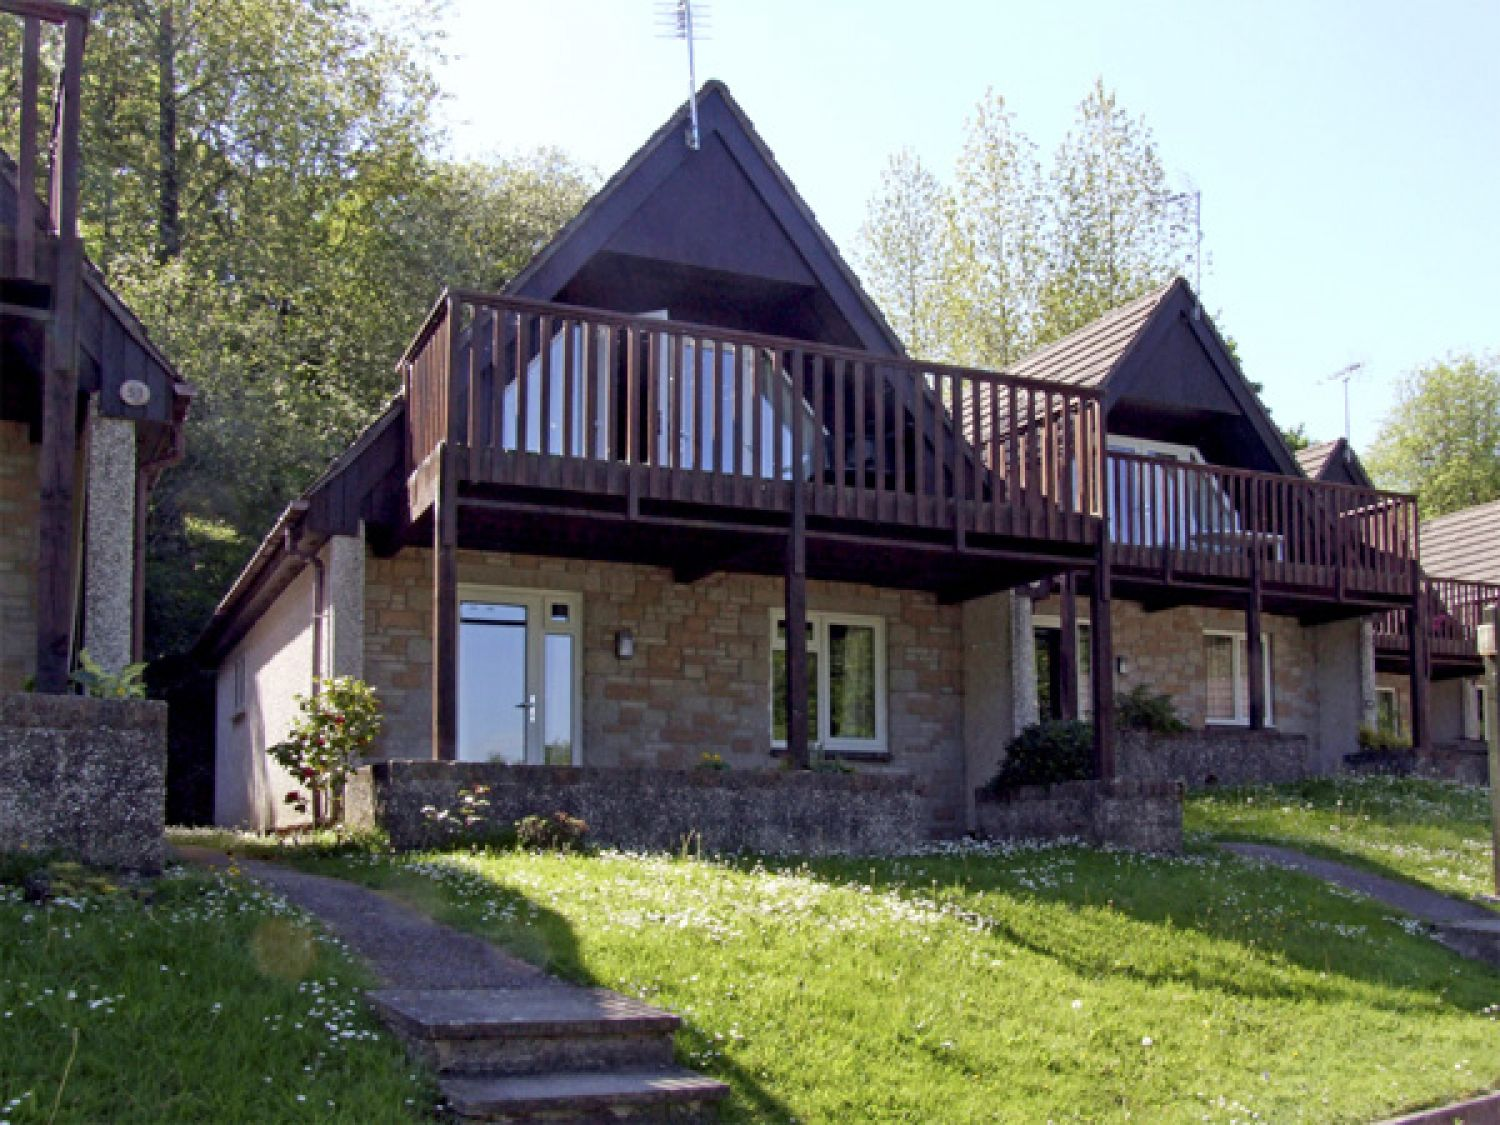 No 50 Valley Lodge Holiday Lodges in Cornwall